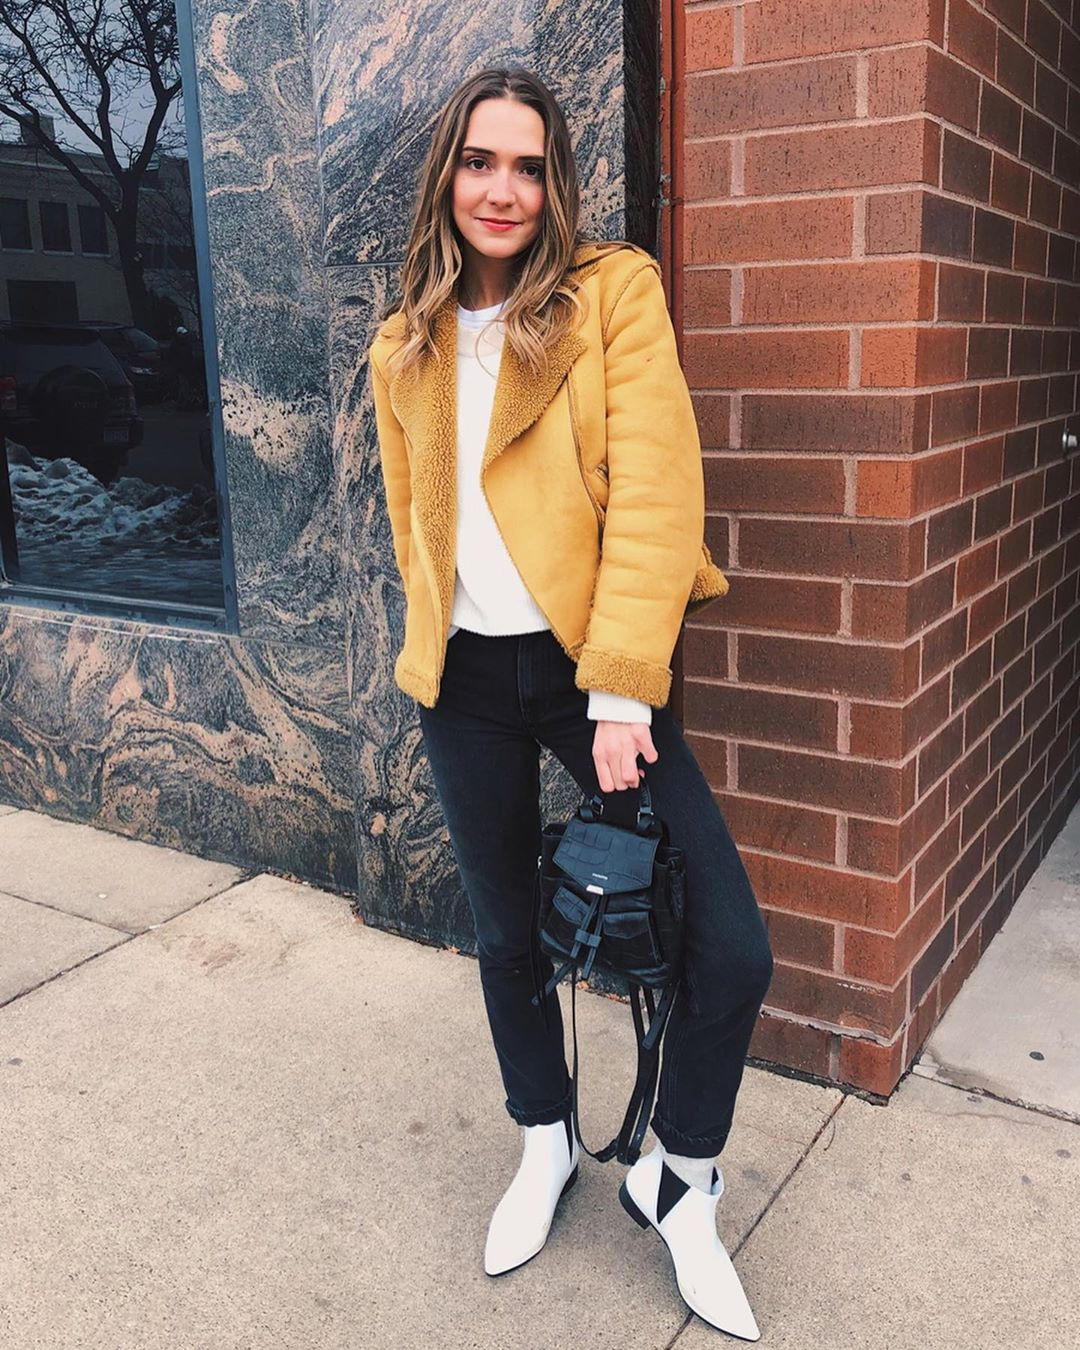 Yellow and white jeans, girls instgram photography, wardrobe ideas